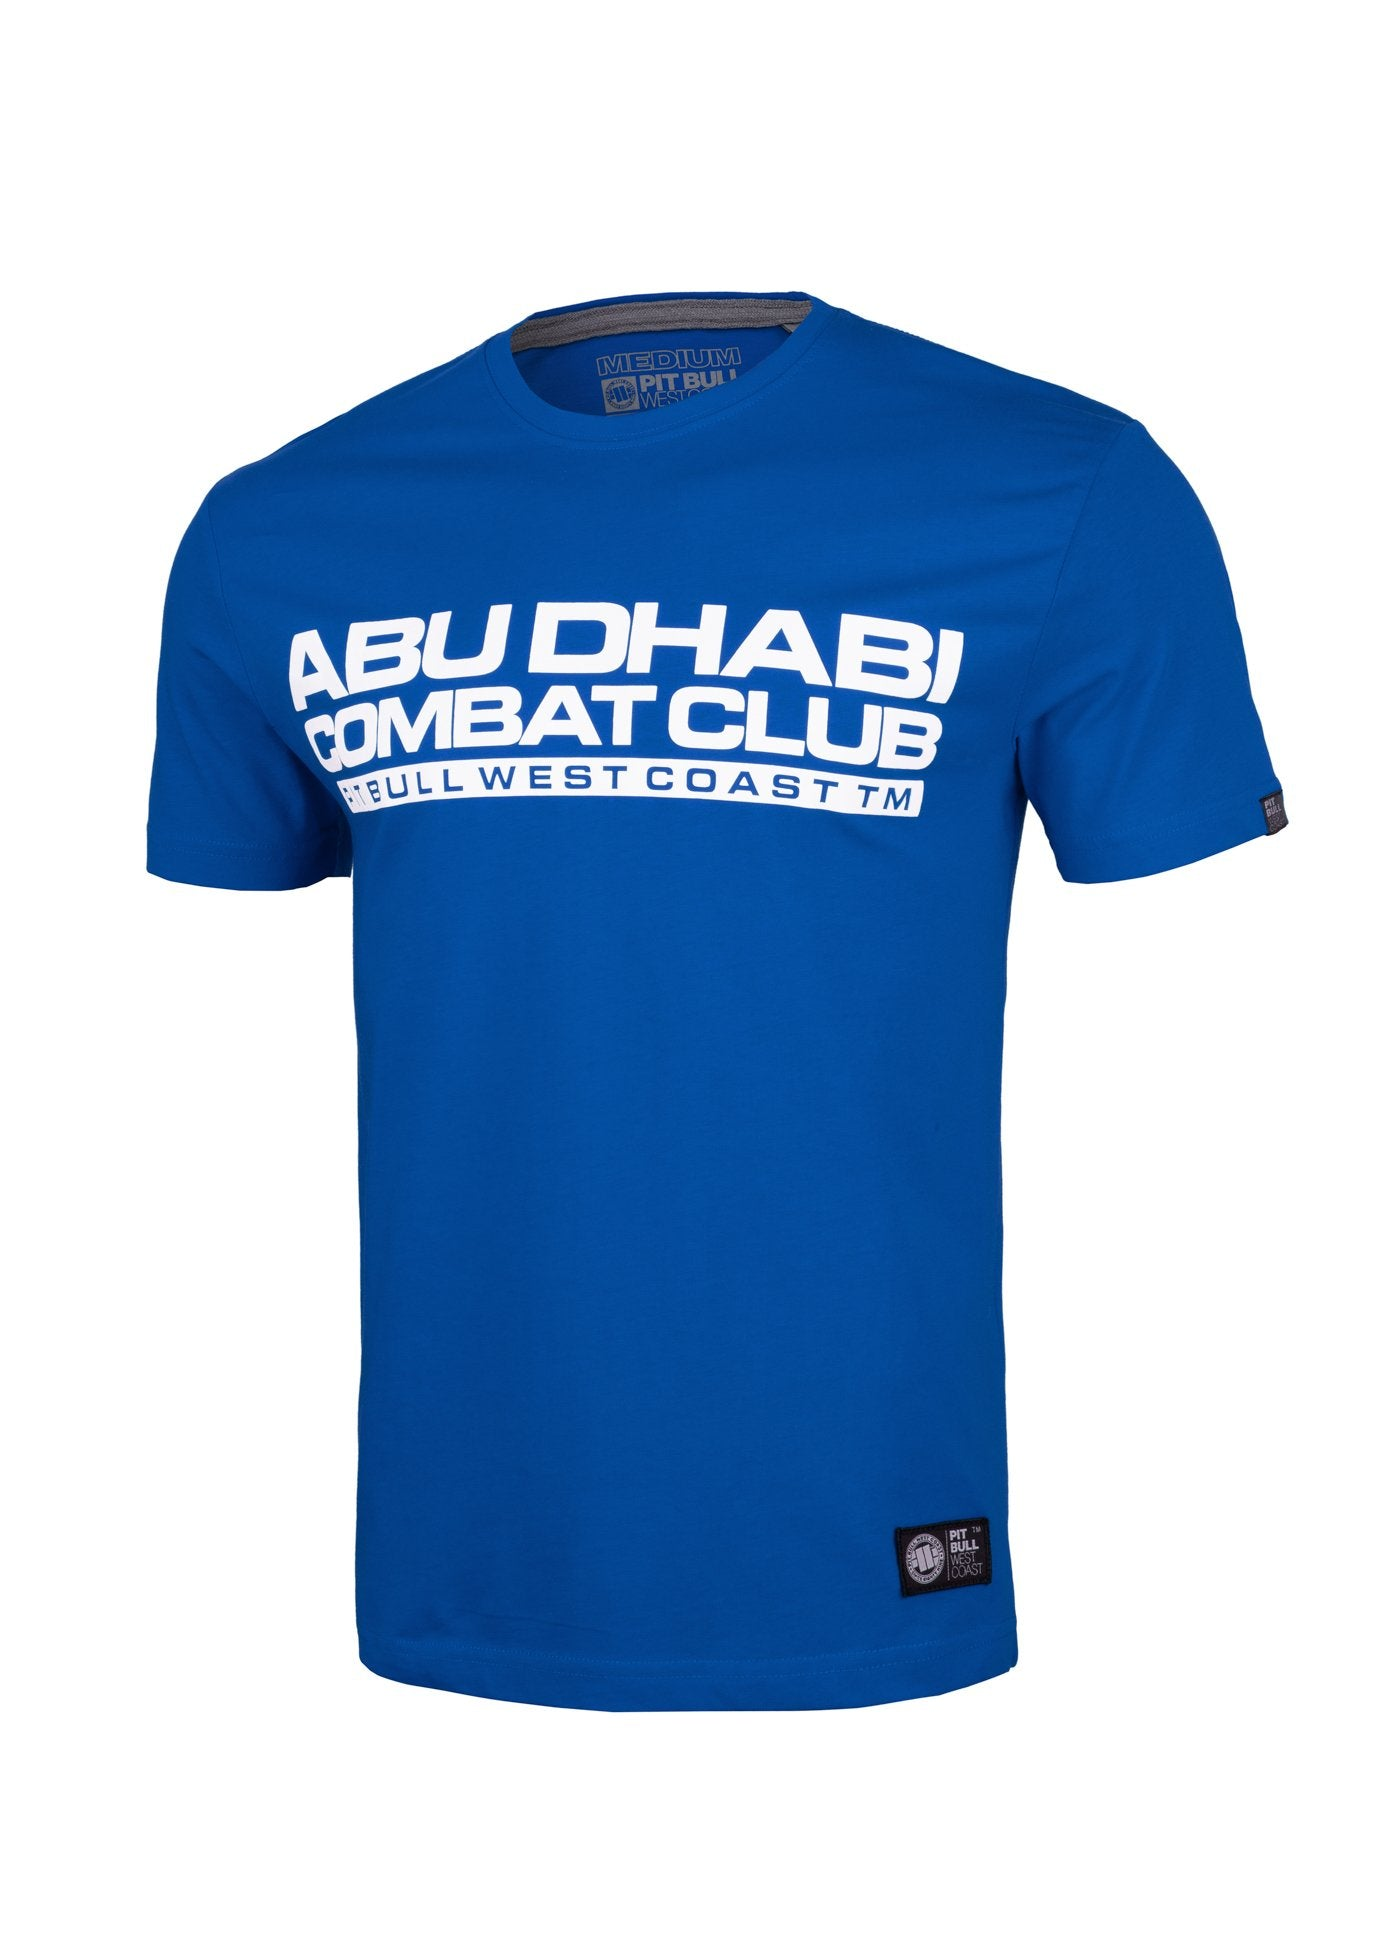 Combat ABU DHABI T-Shirt Royal Blue - Pitbull West Coast U.S.A.